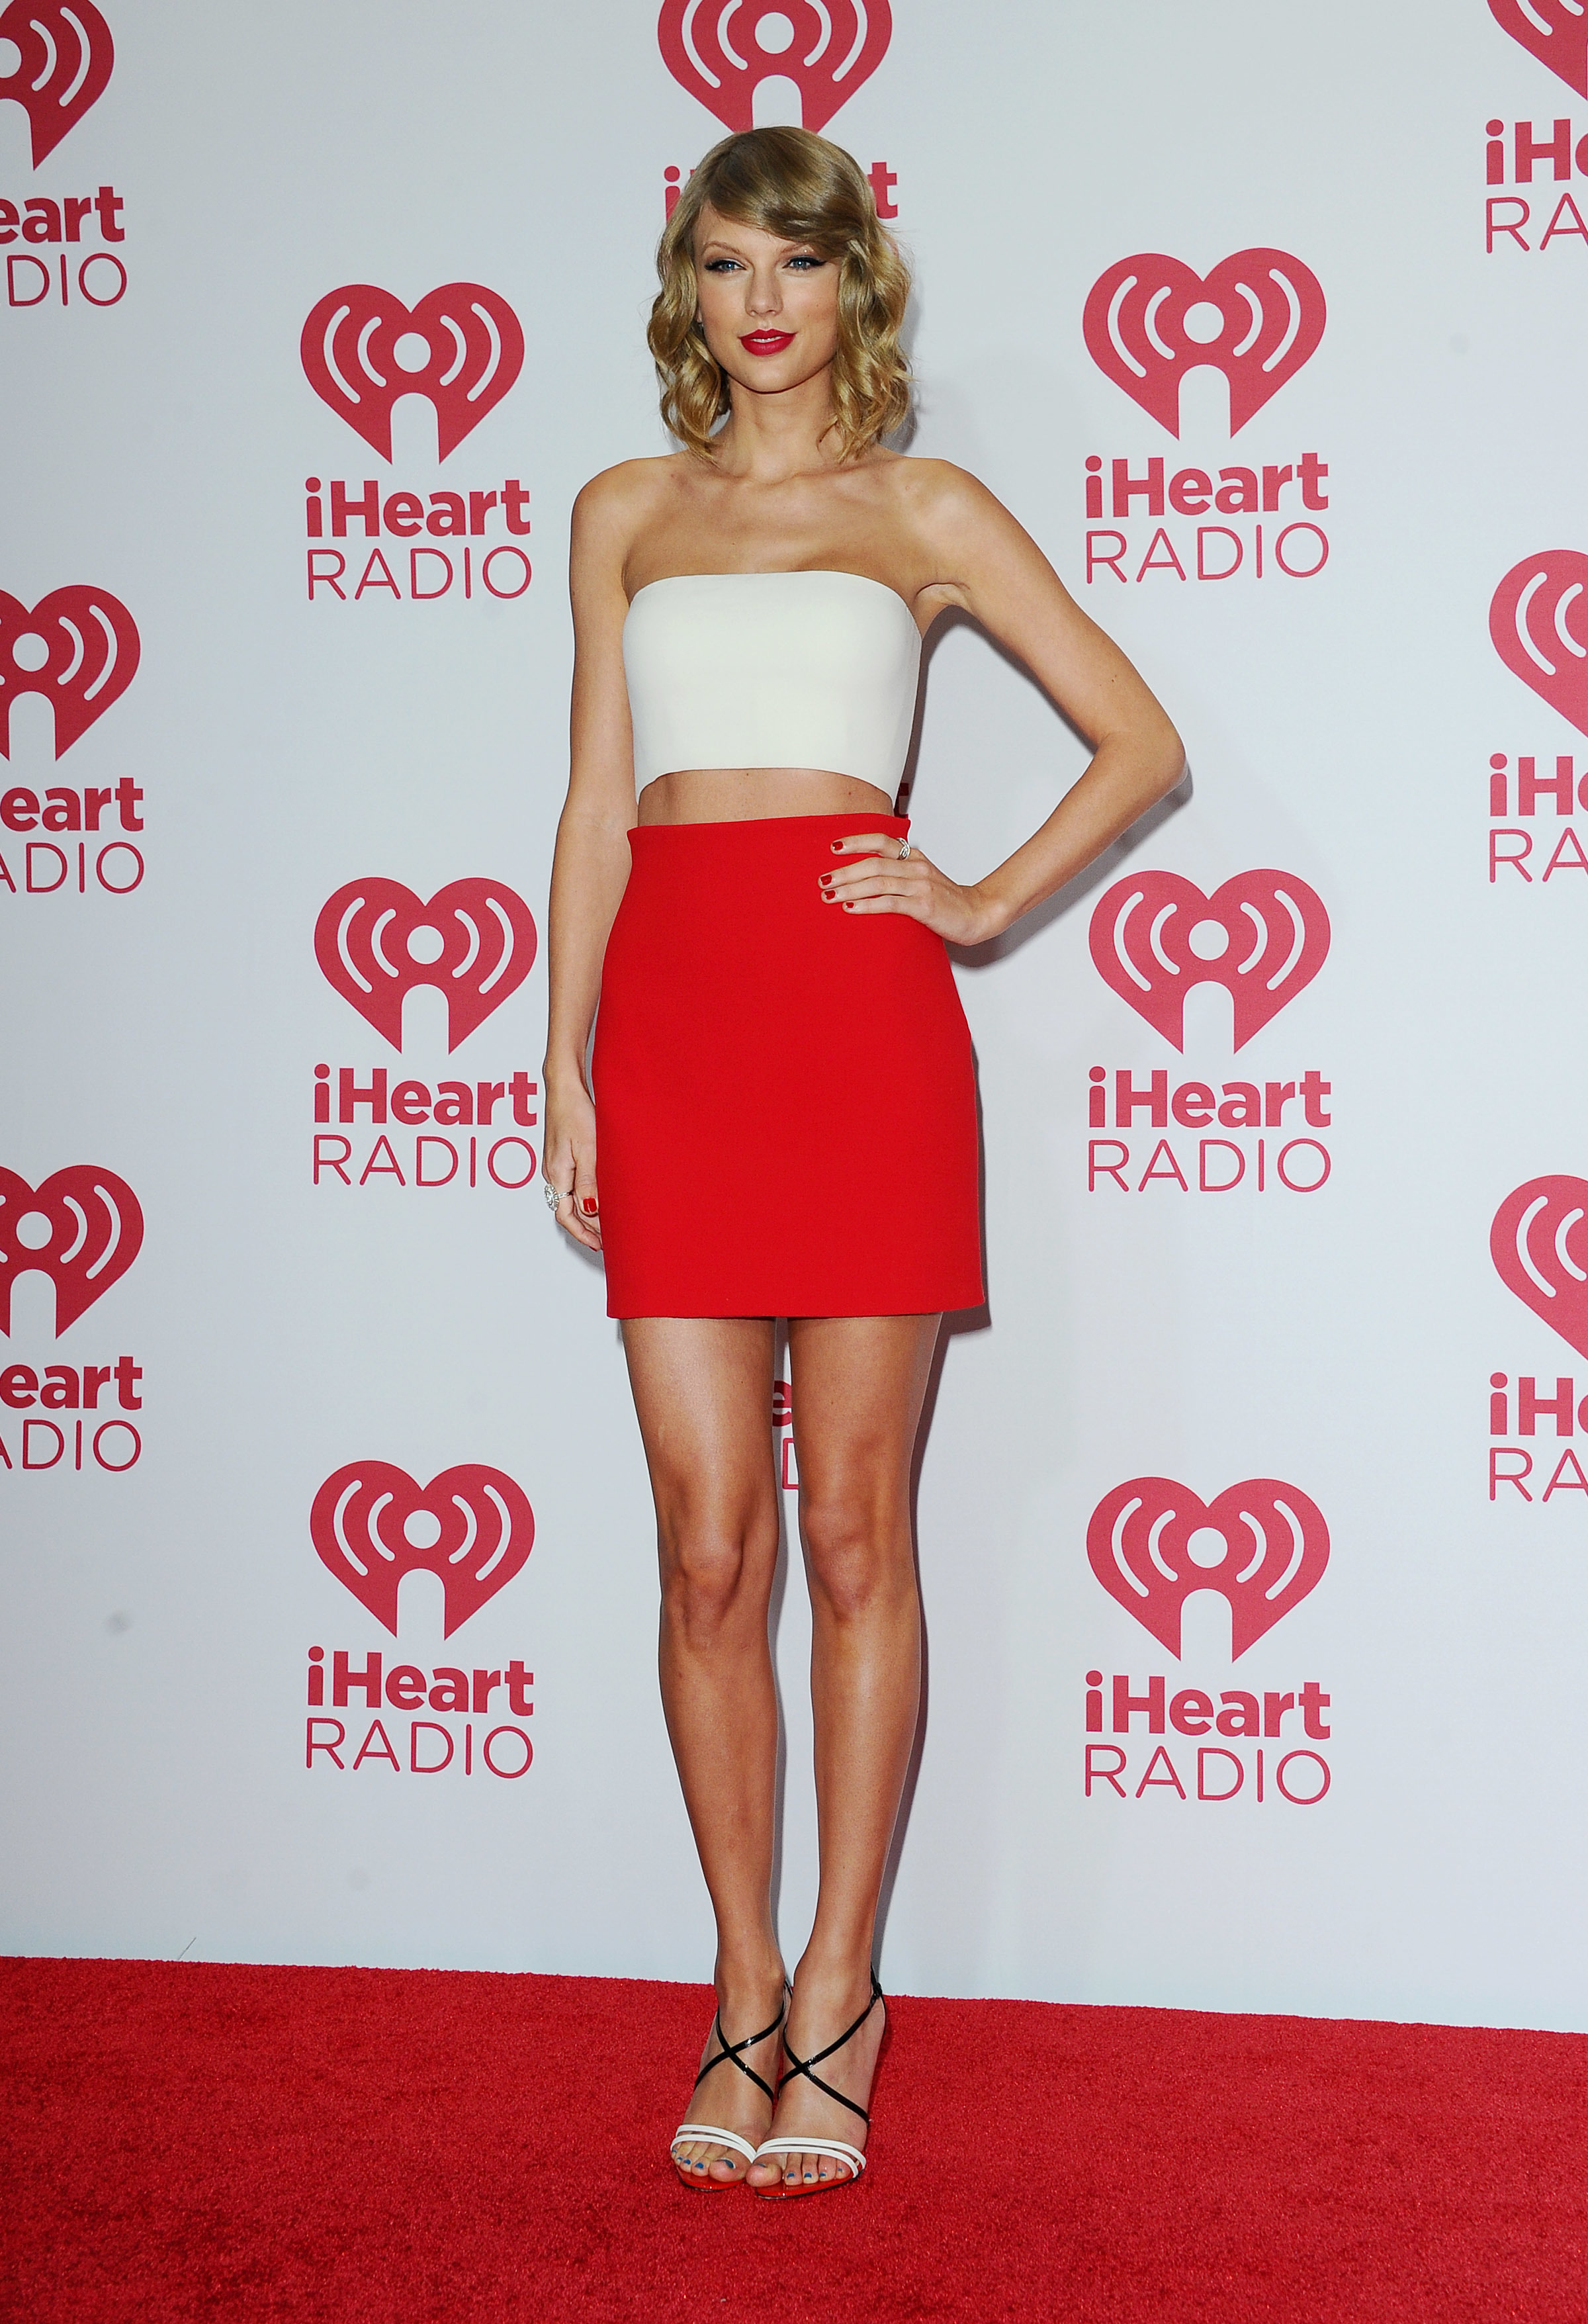 taylor swift iheart